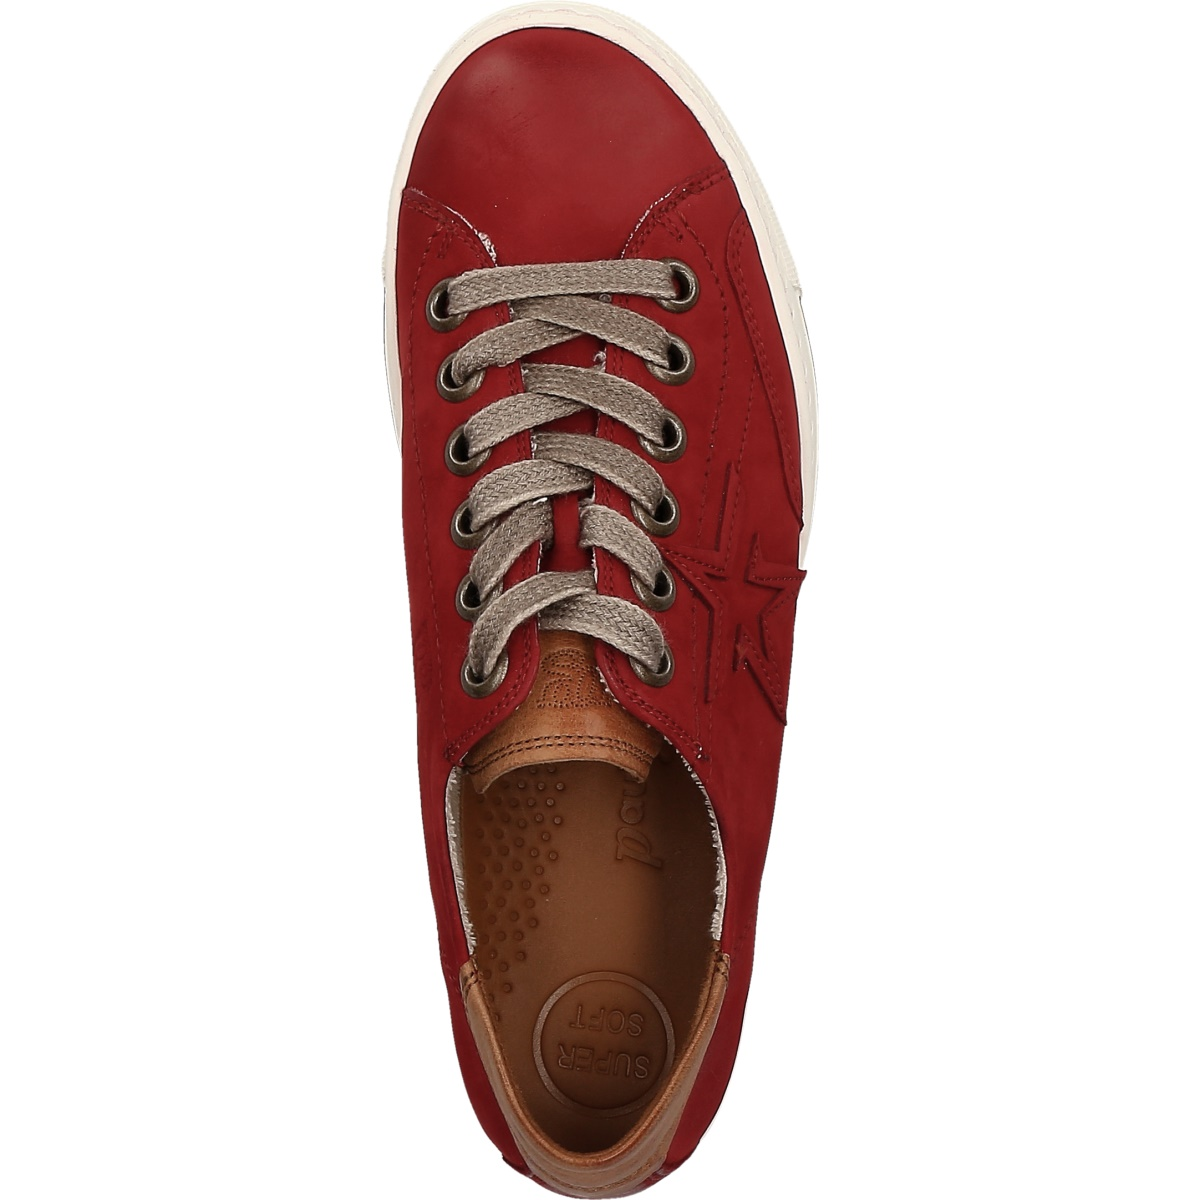 Lace ups in red 4810 085 Buy in Paul Green Online Shop